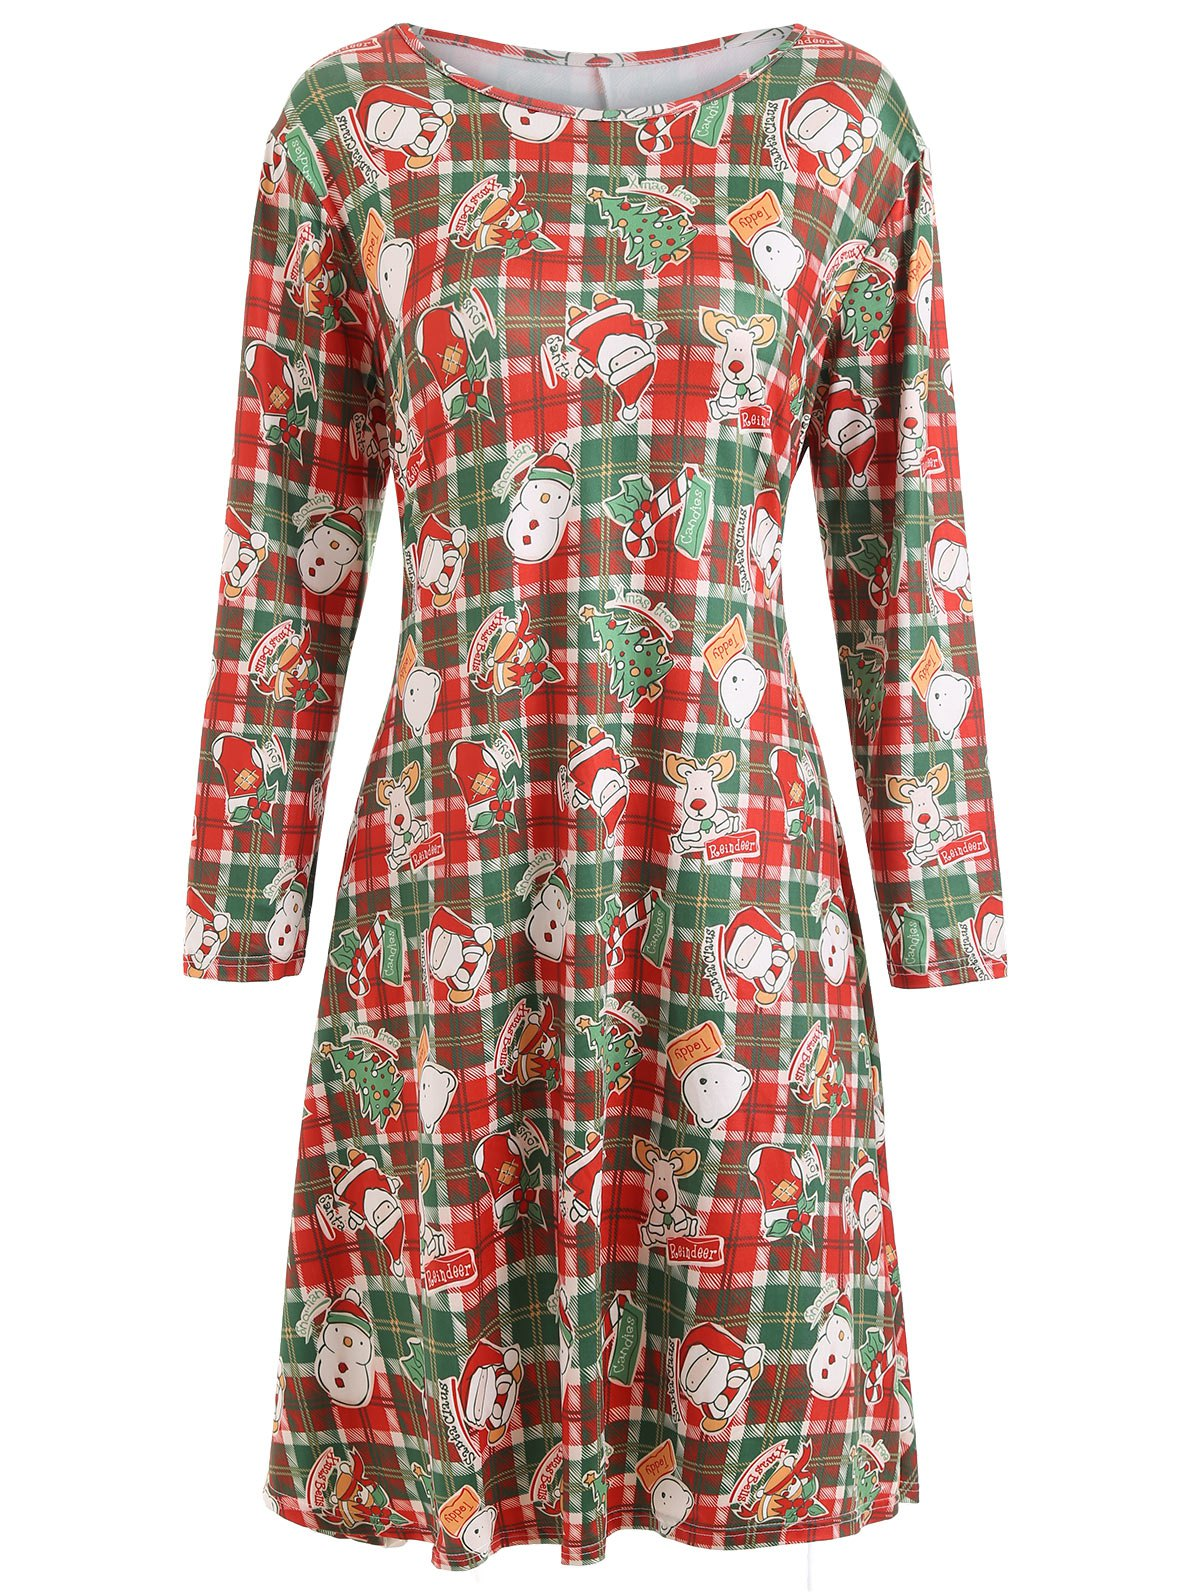 Plus Size Plaid Christmas Printed Dress with Sleeves plus size christmas candy printed dress